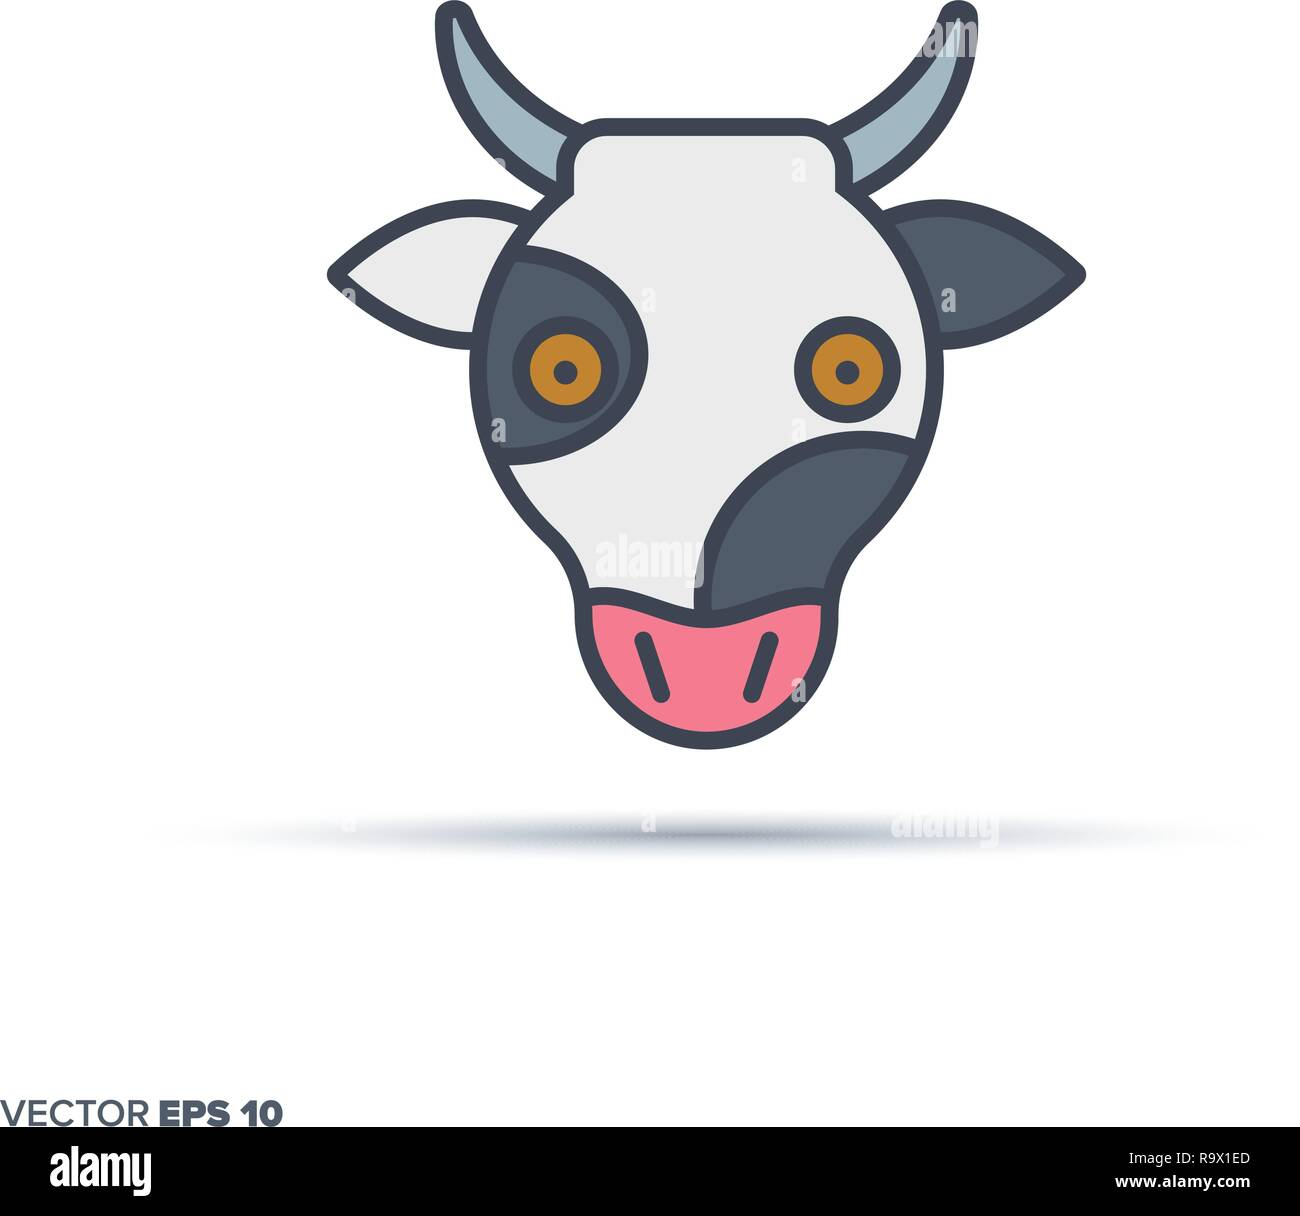 Cute cow face outline vector icon with color fill. Funny animal illustration. - Stock Vector